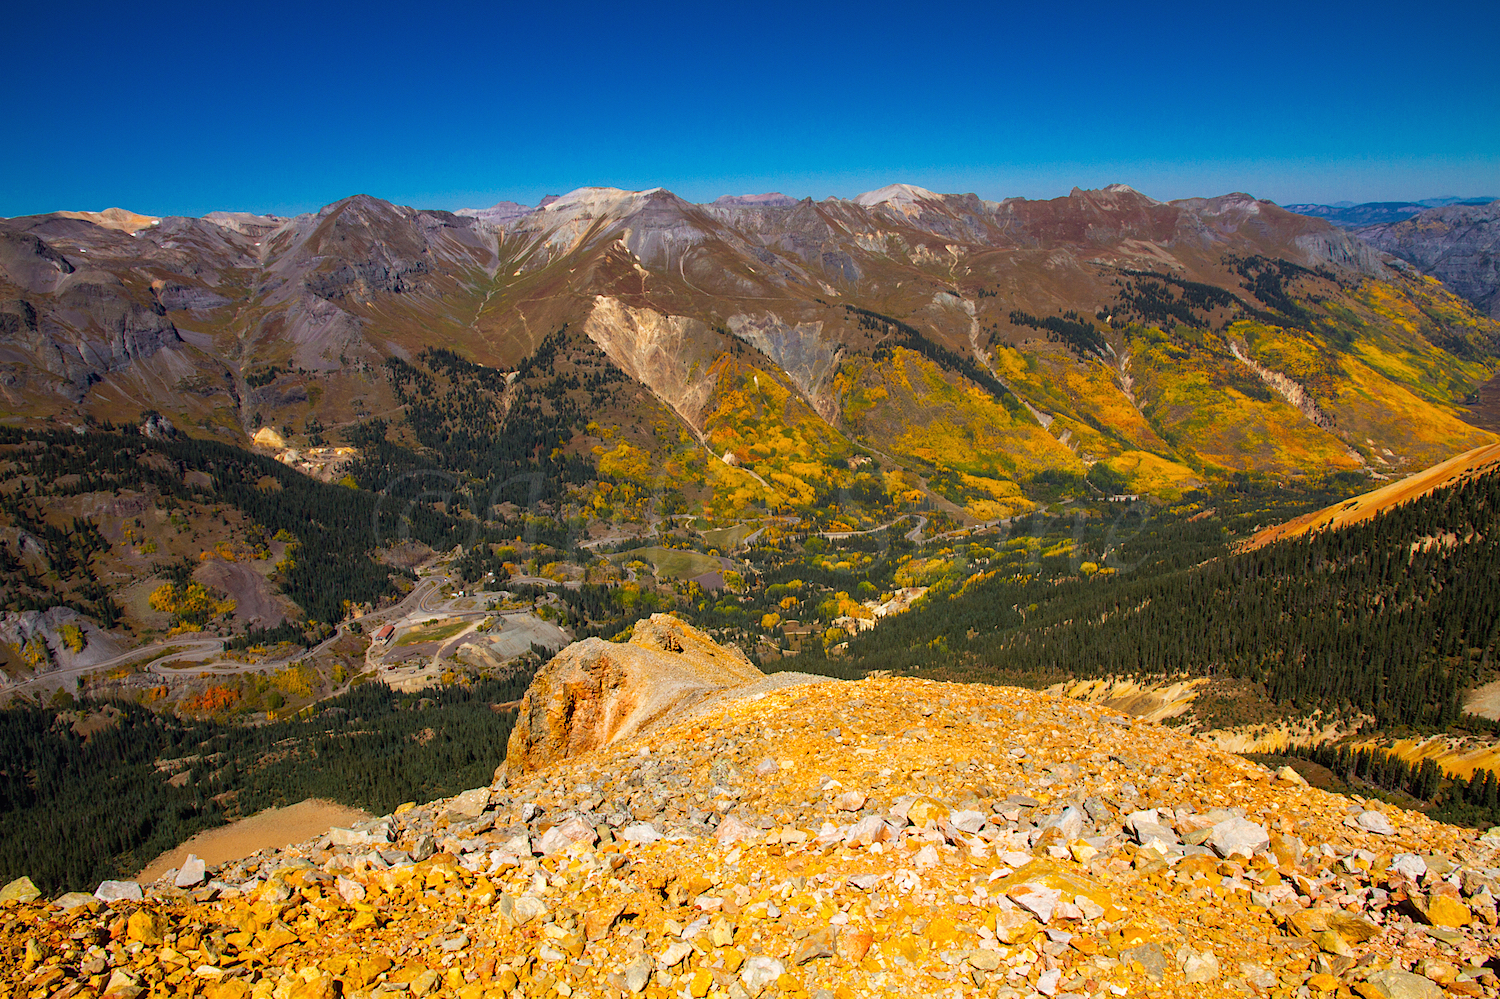 Red Mountain #3, Image #1425